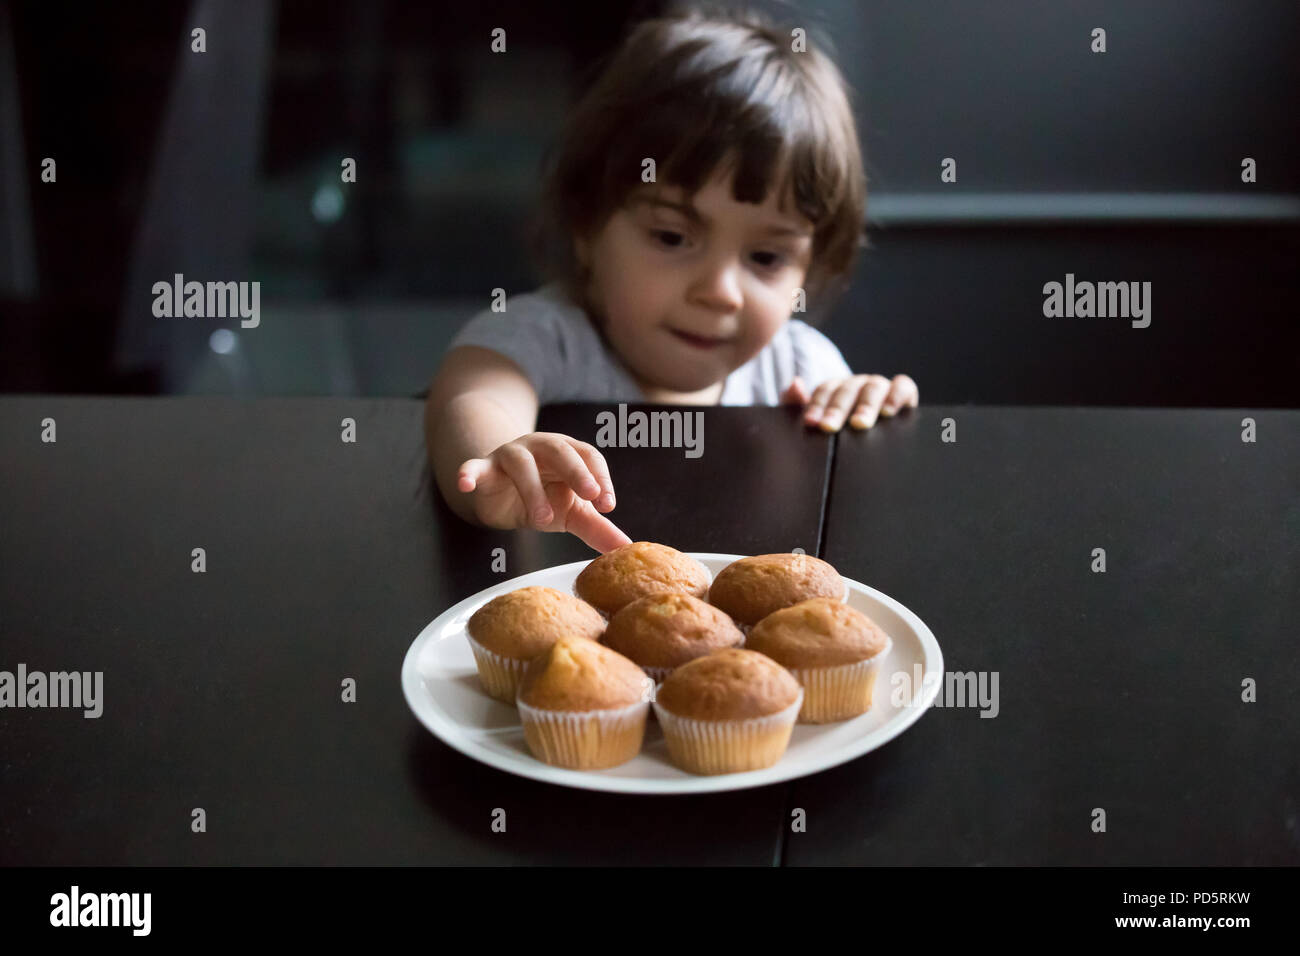 Curieux cute little girl atteindre muffins sur la table Photo Stock